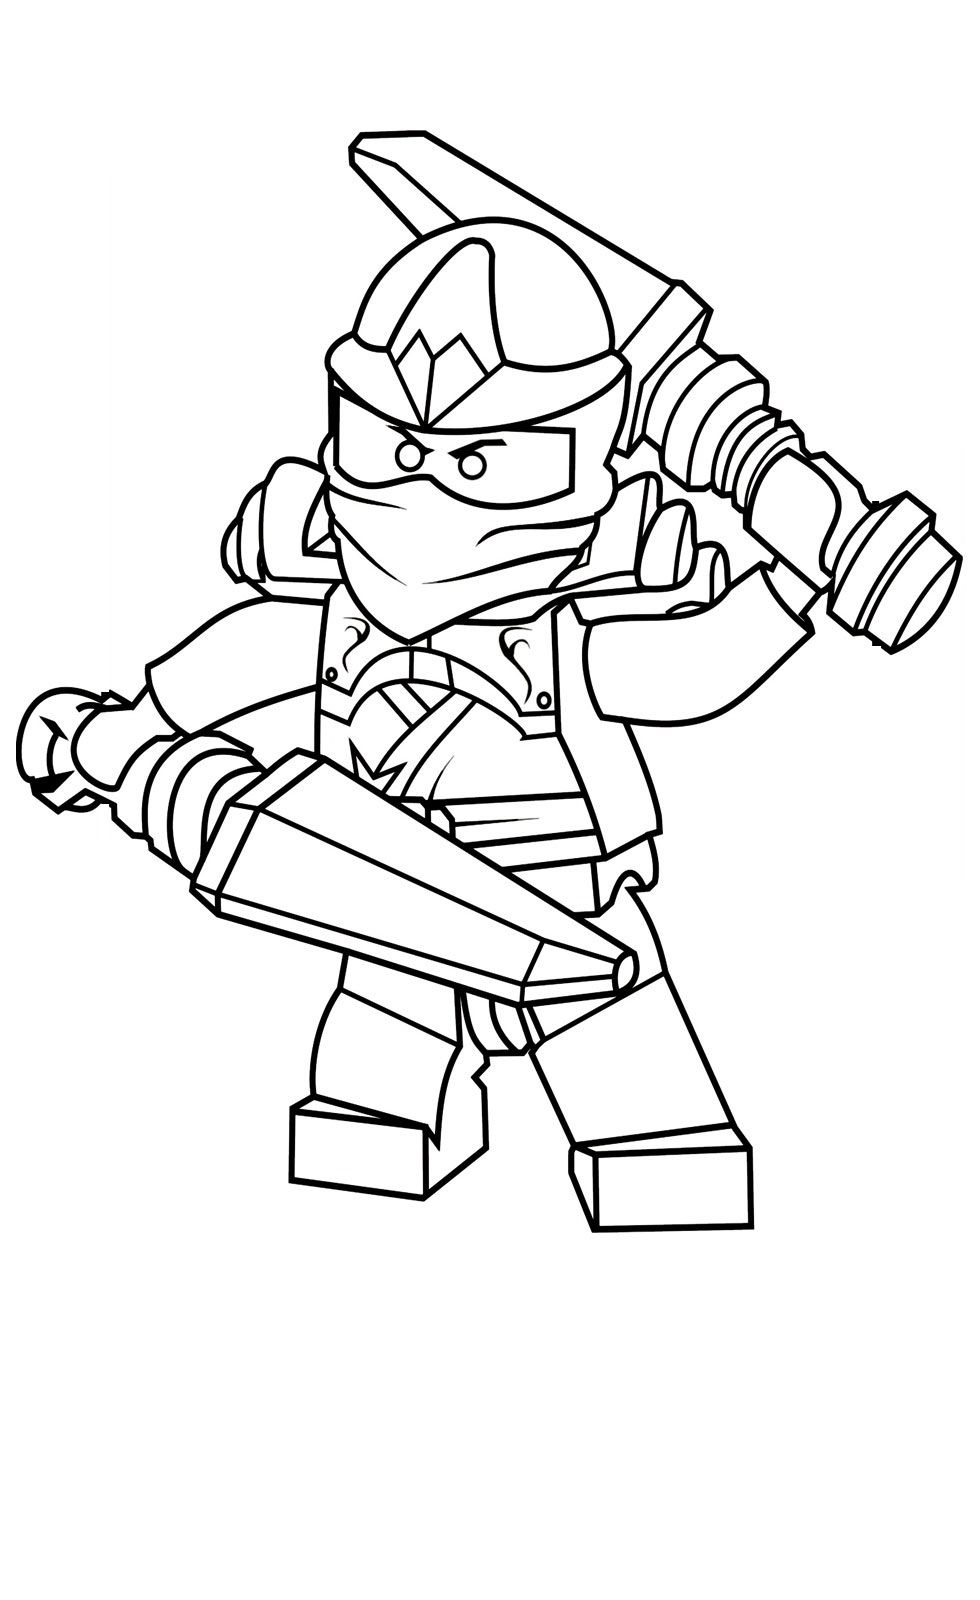 photo relating to Ninjago Printable Coloring Pages named Cost-free Printable Ninjago Coloring Web pages For Small children ninjago